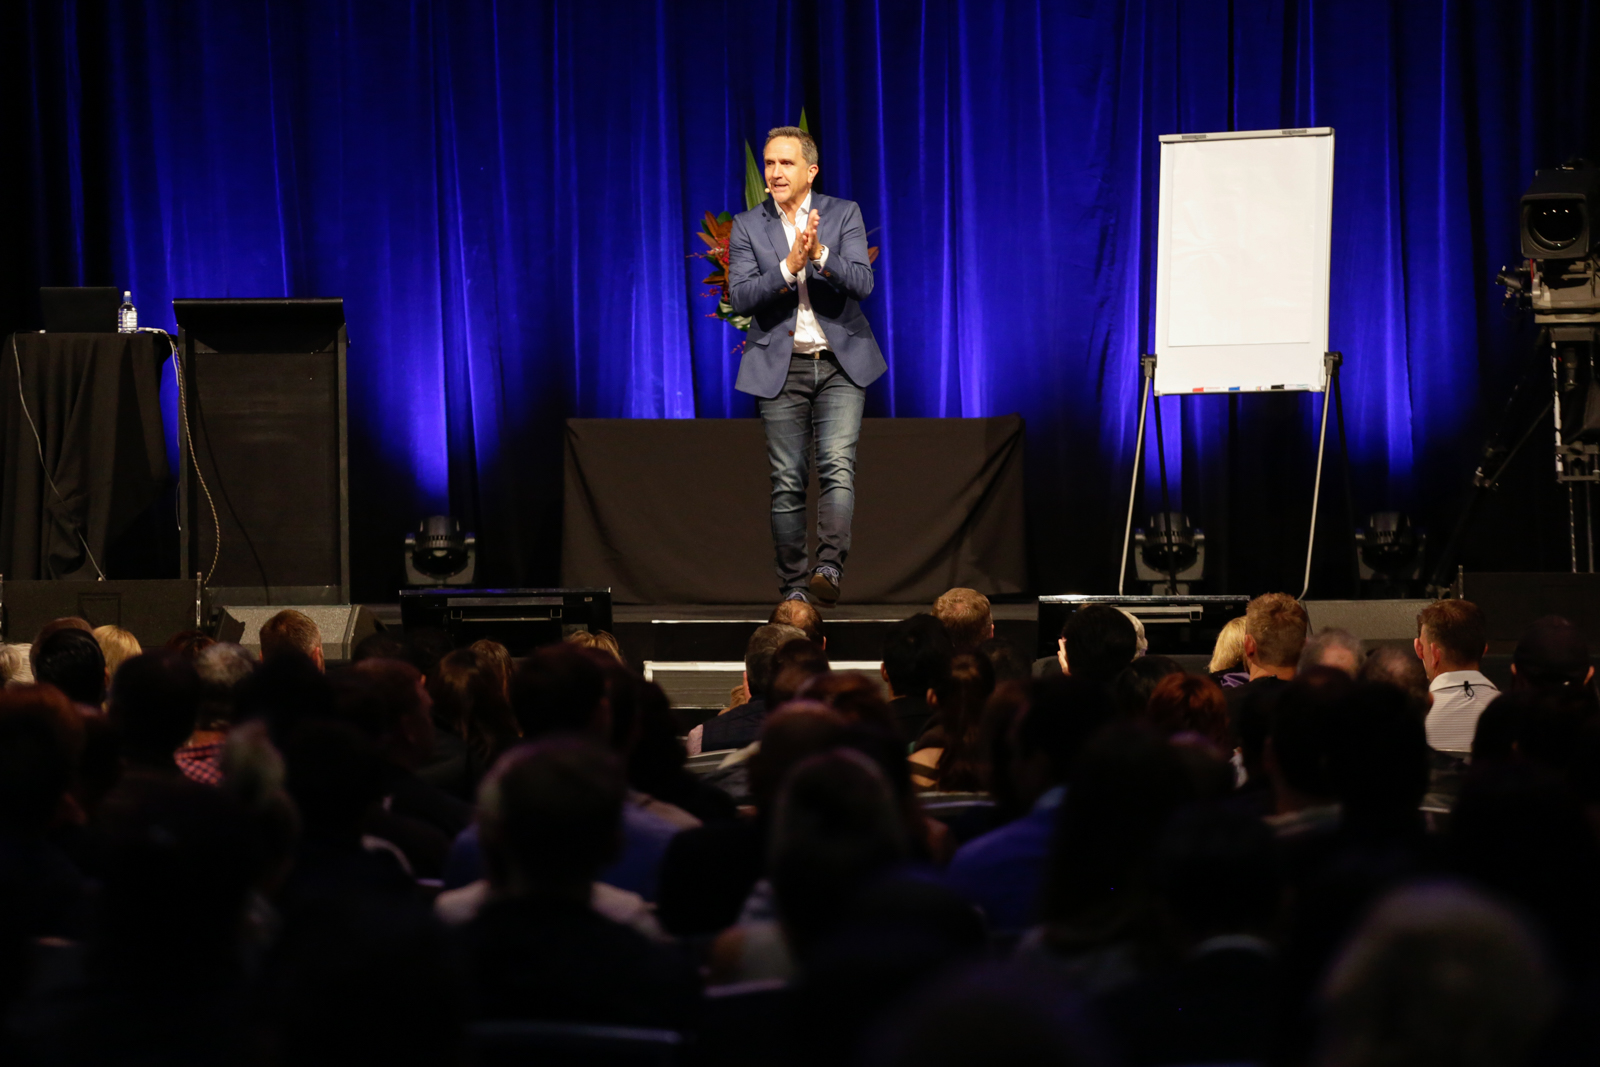 The Mentor List Podcast - Scott harris Live on Stage at Tony Robbins Event